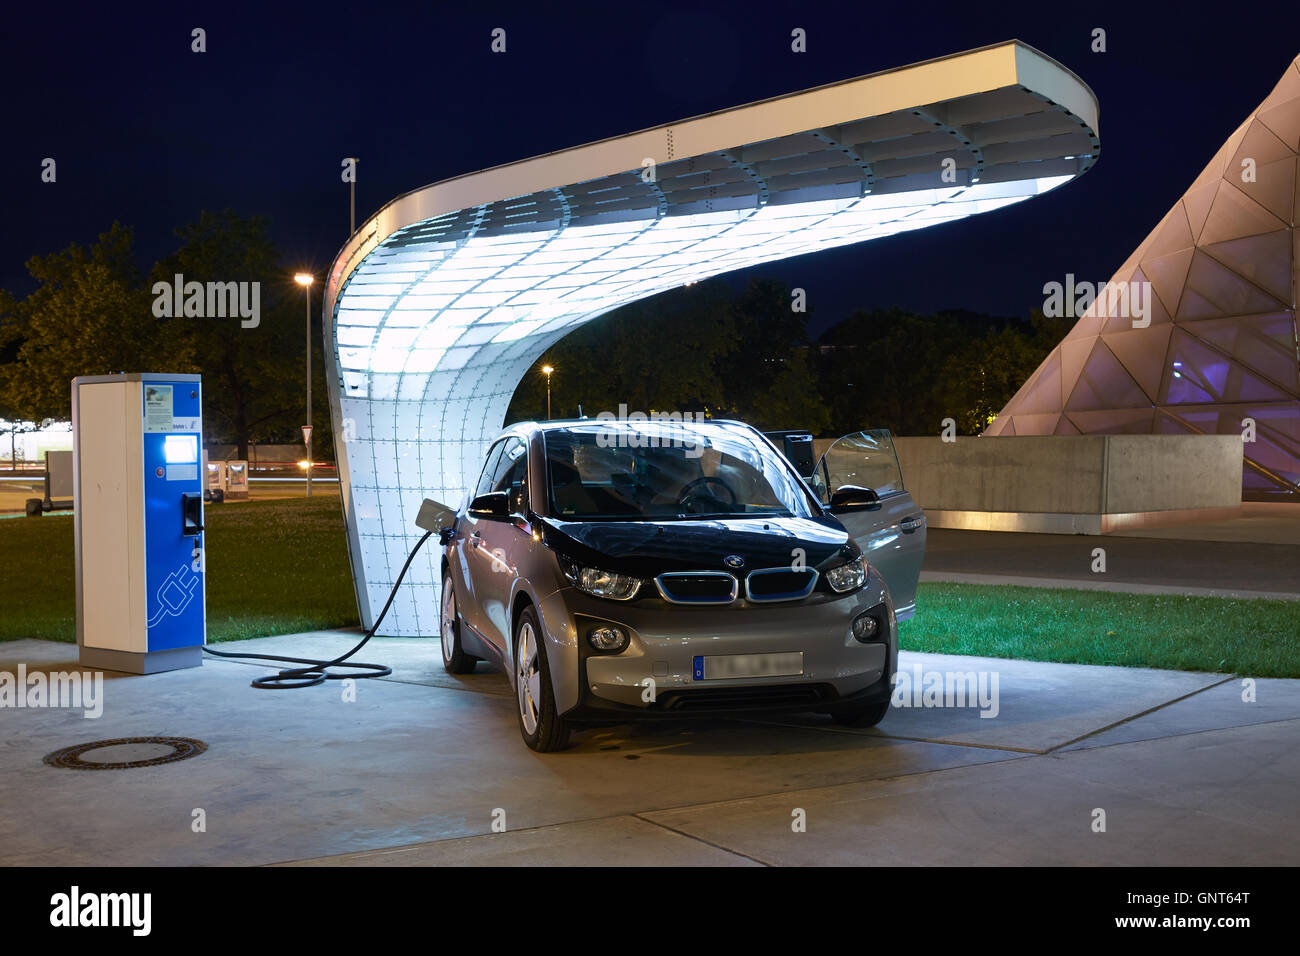 Muenchen, Germany, an electric vehicle at a Ladesaeule - Stock Image